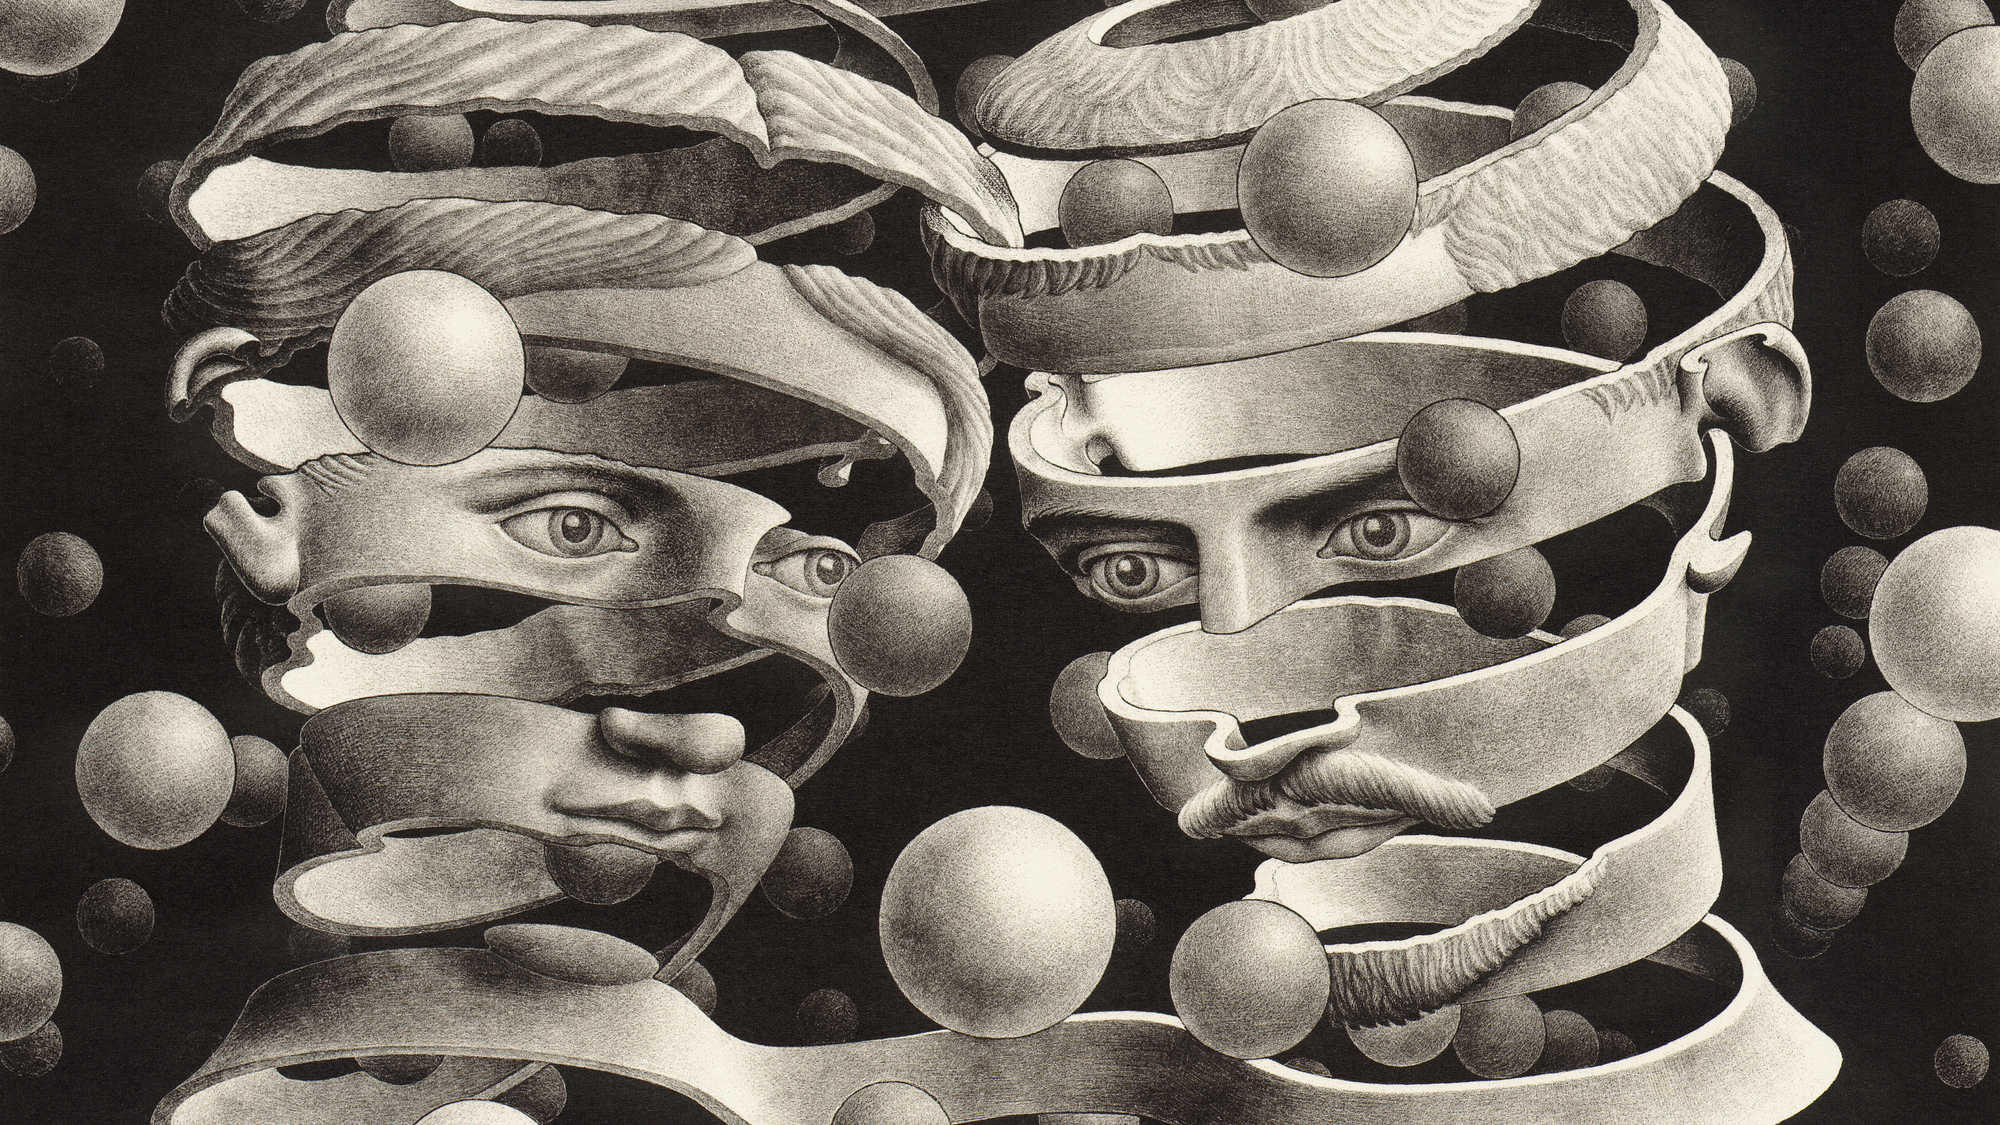 Escher: Journey into Infinity (image 2)